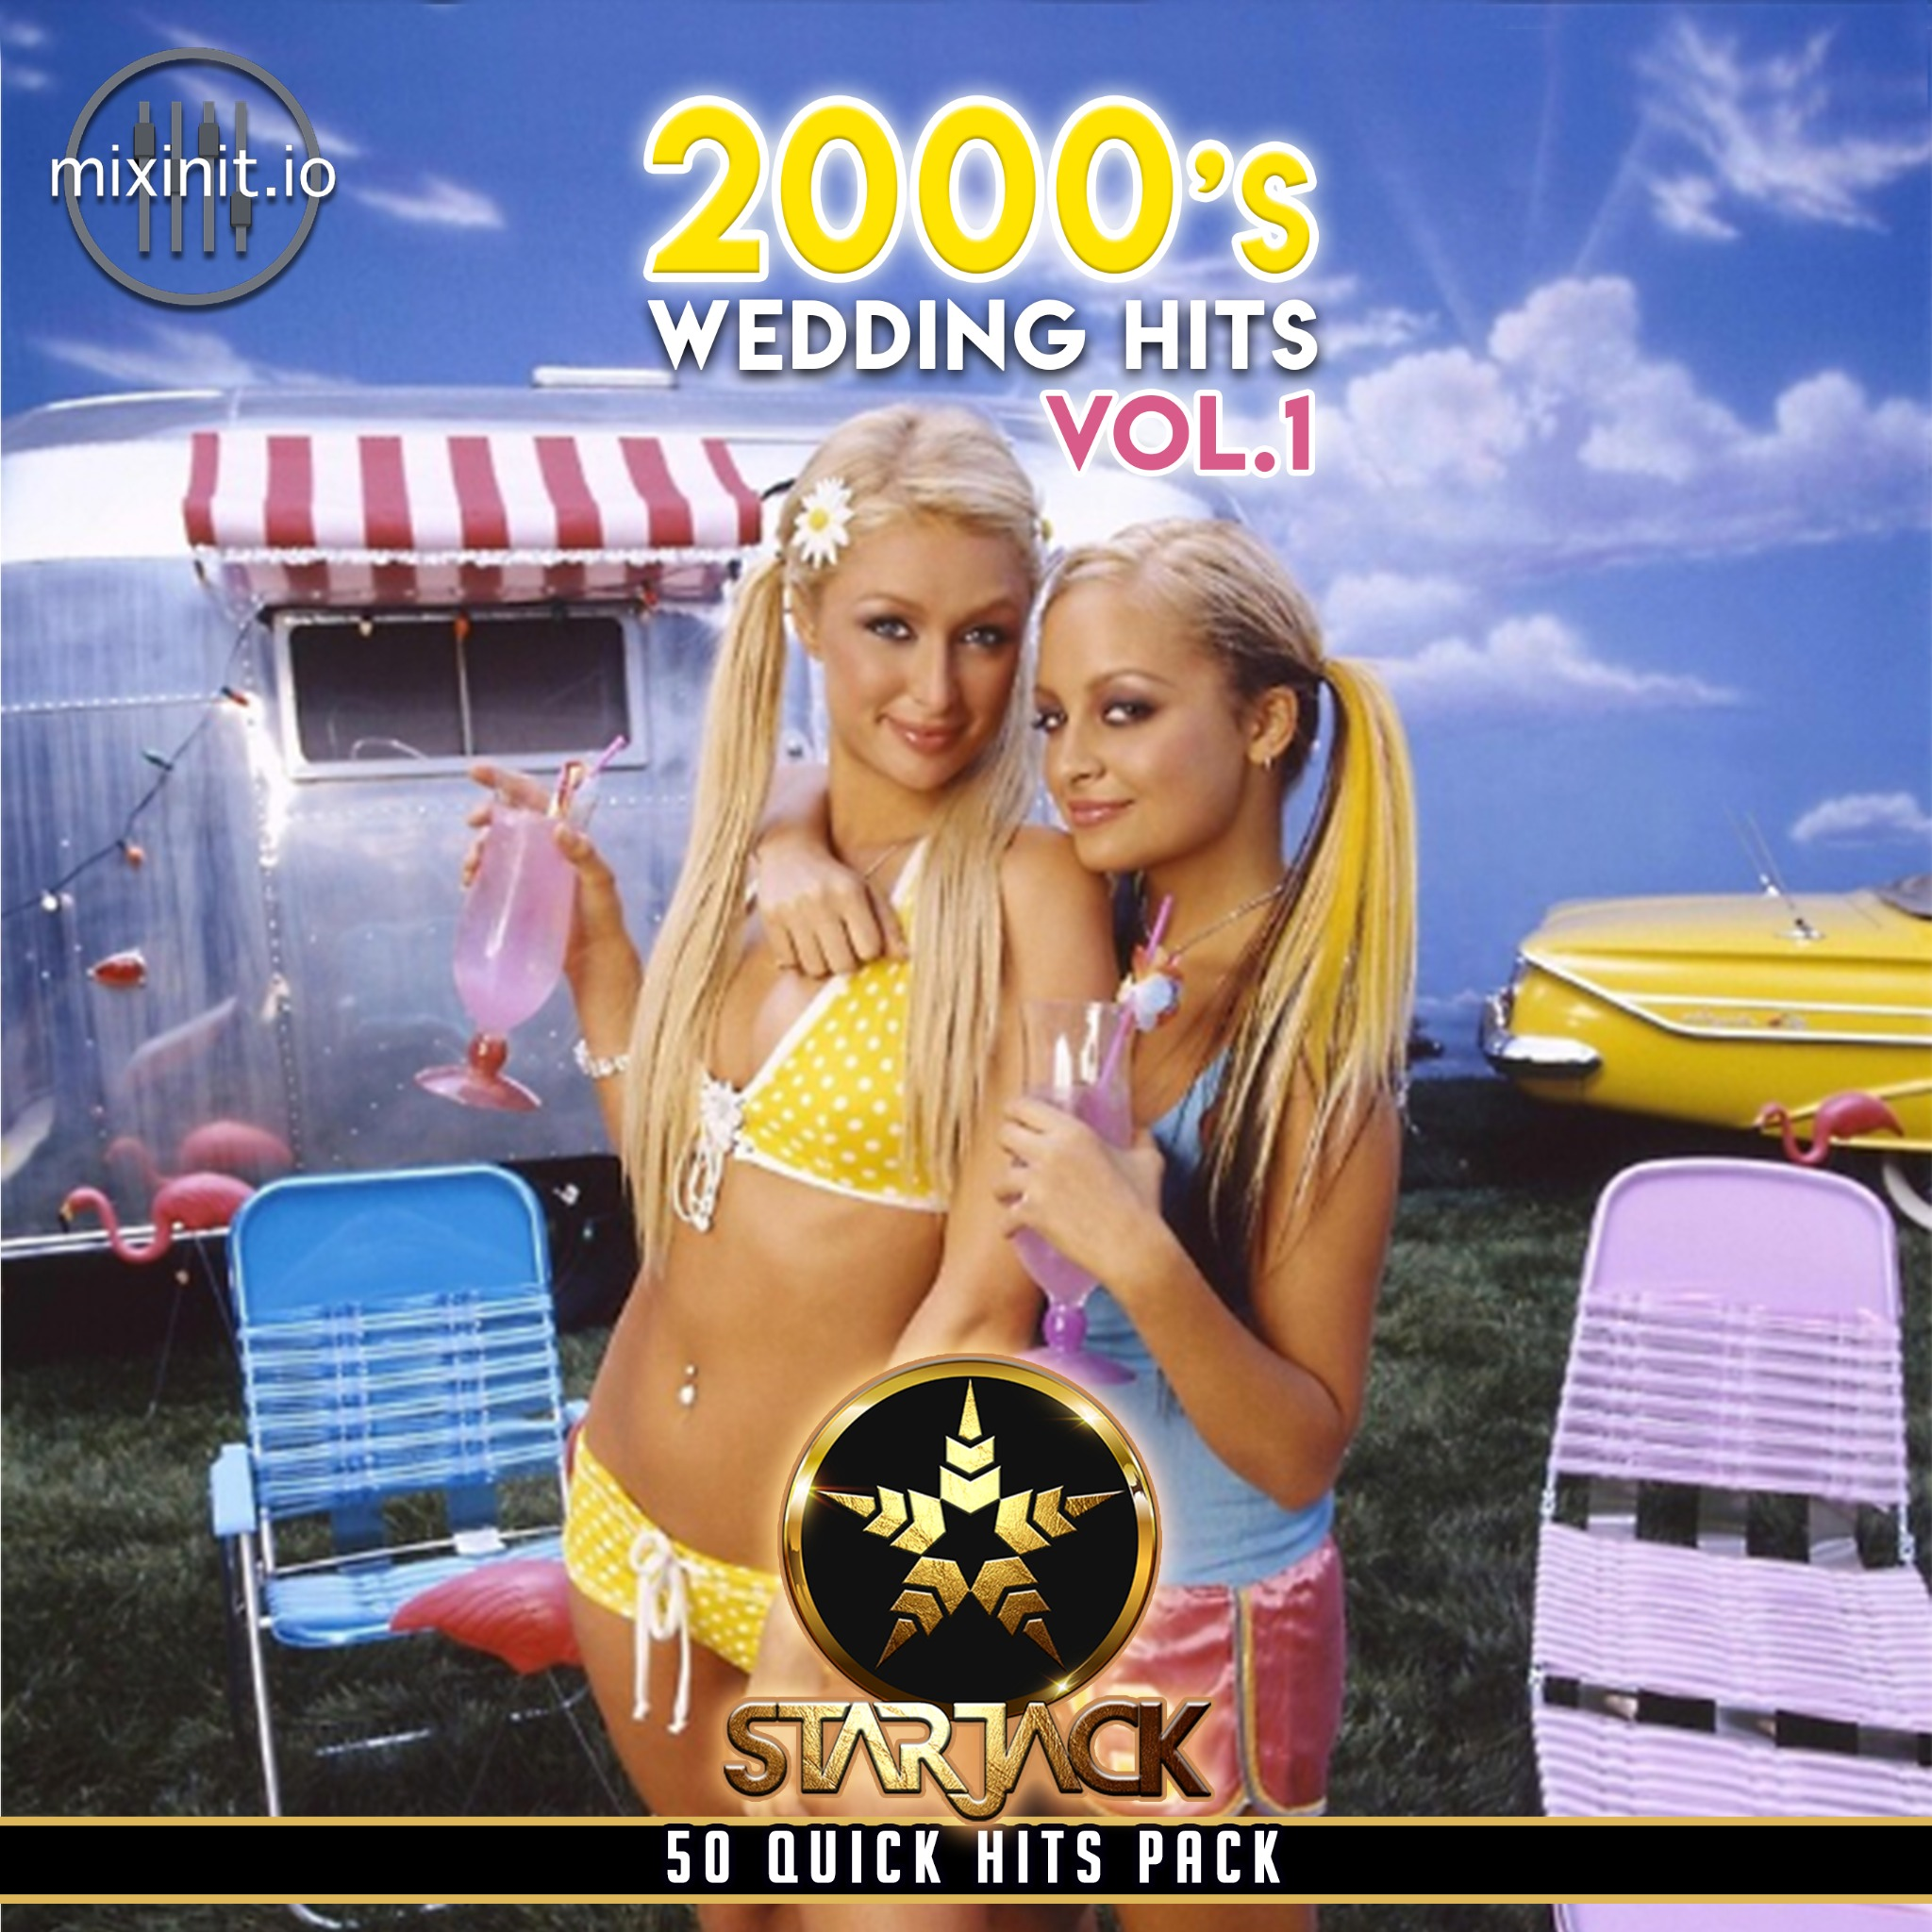 Starjack - 2000's Wedding Hits Vol. 1 (Acap Out Quick Hits)